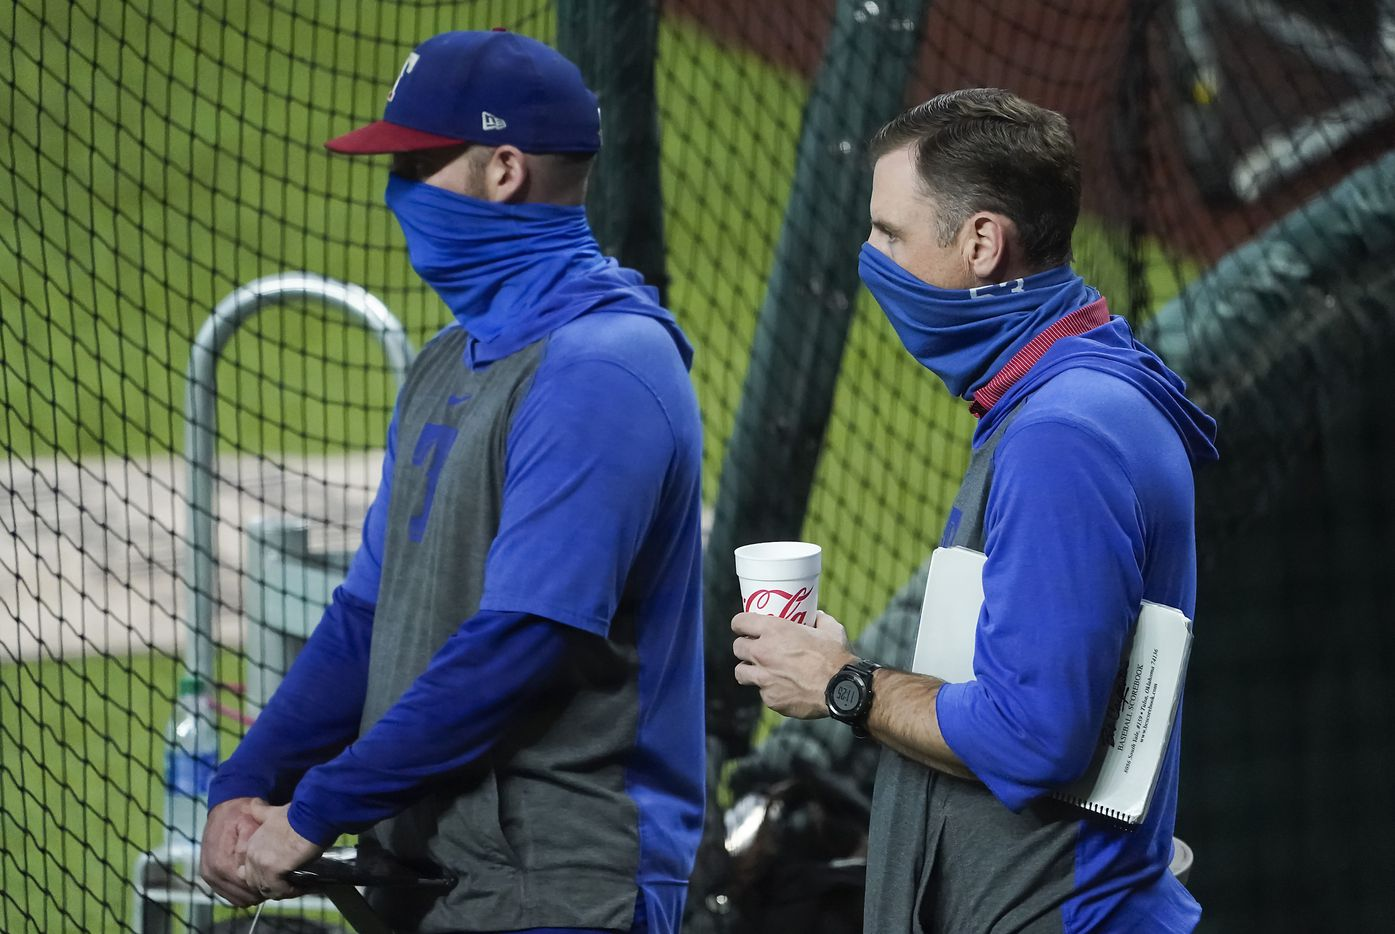 Texas Rangers assistant general manager Mike Daly (right) watches a game between players at the team's alternate training site at Globe Life Field on Saturday, Sept. 19, 2020.